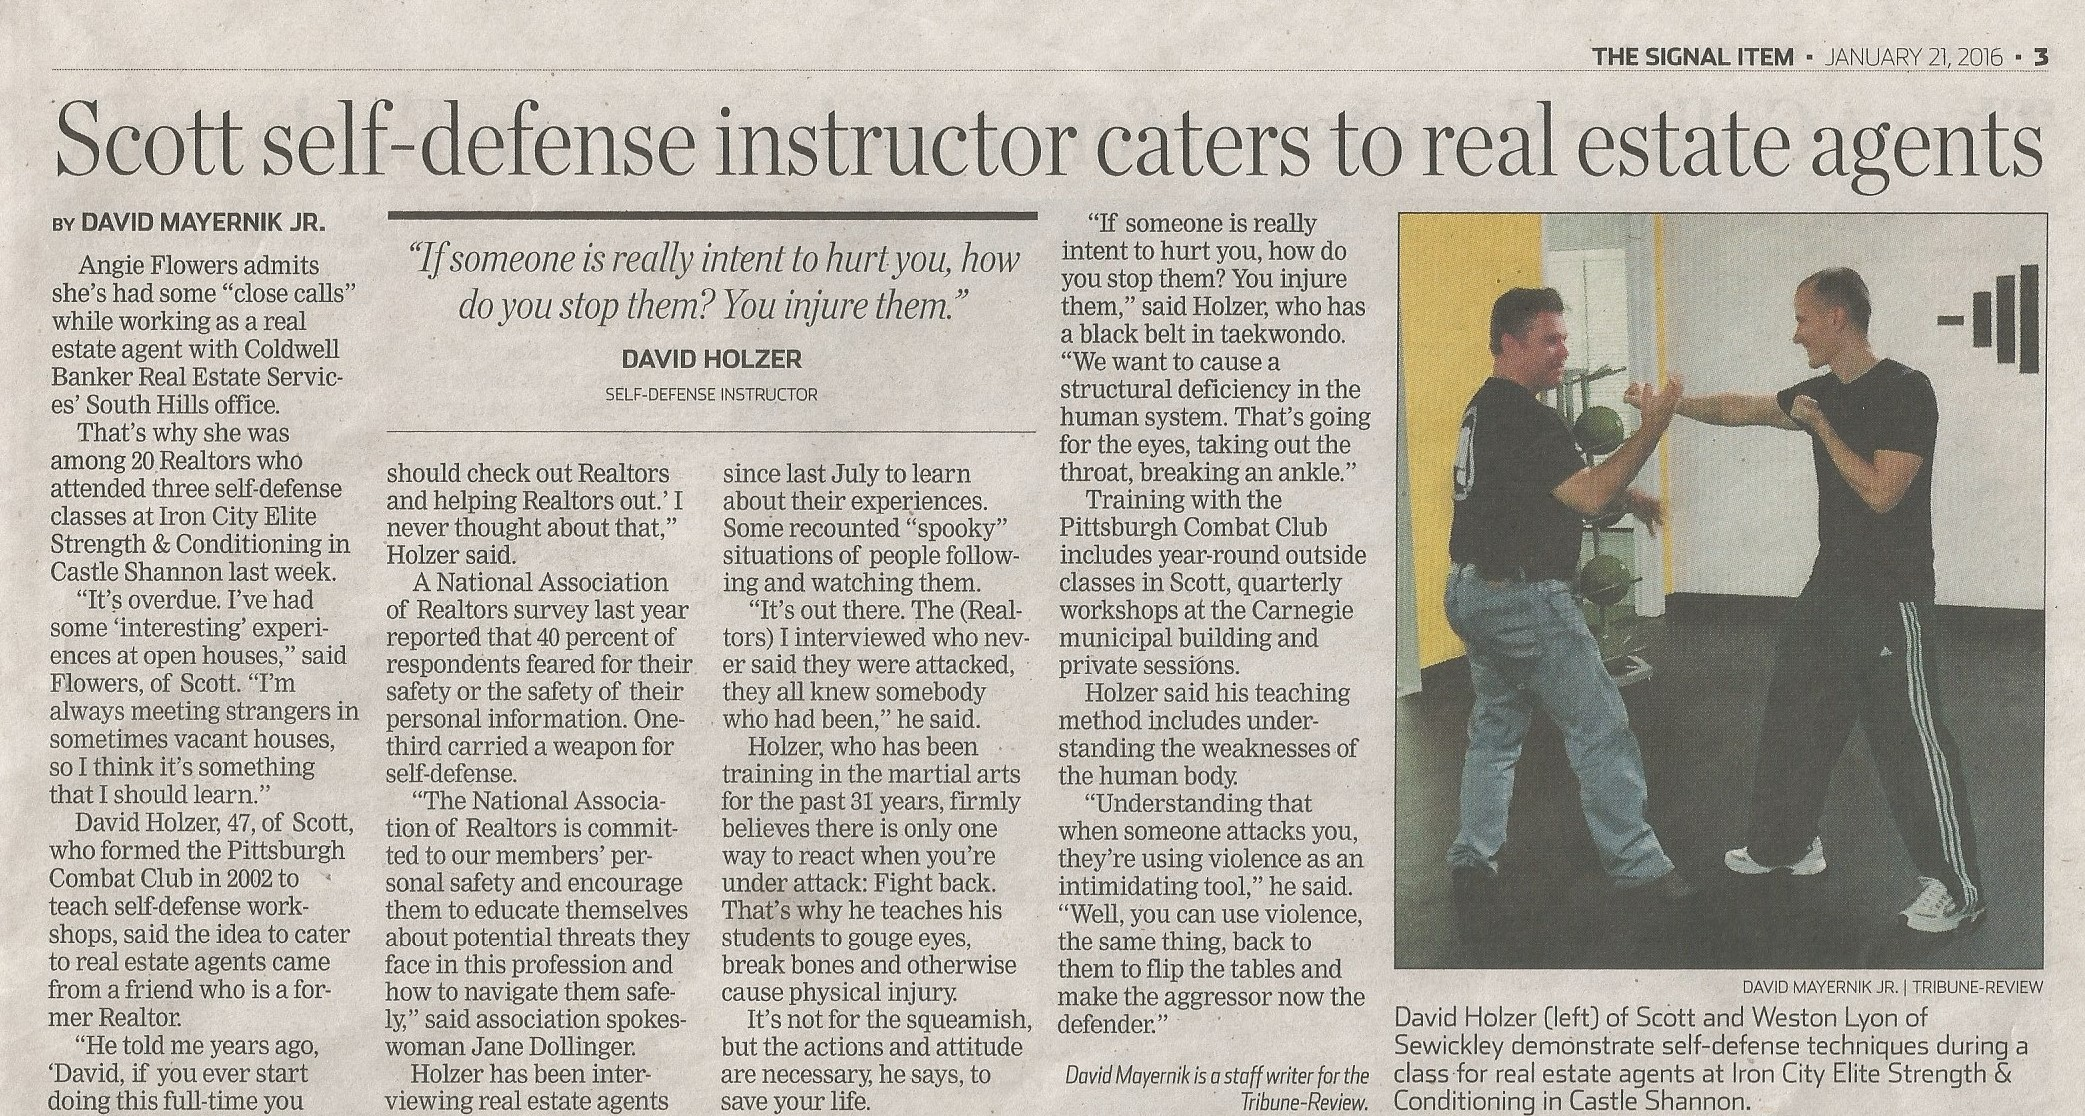 Pittsburgh Combat Club in the news!